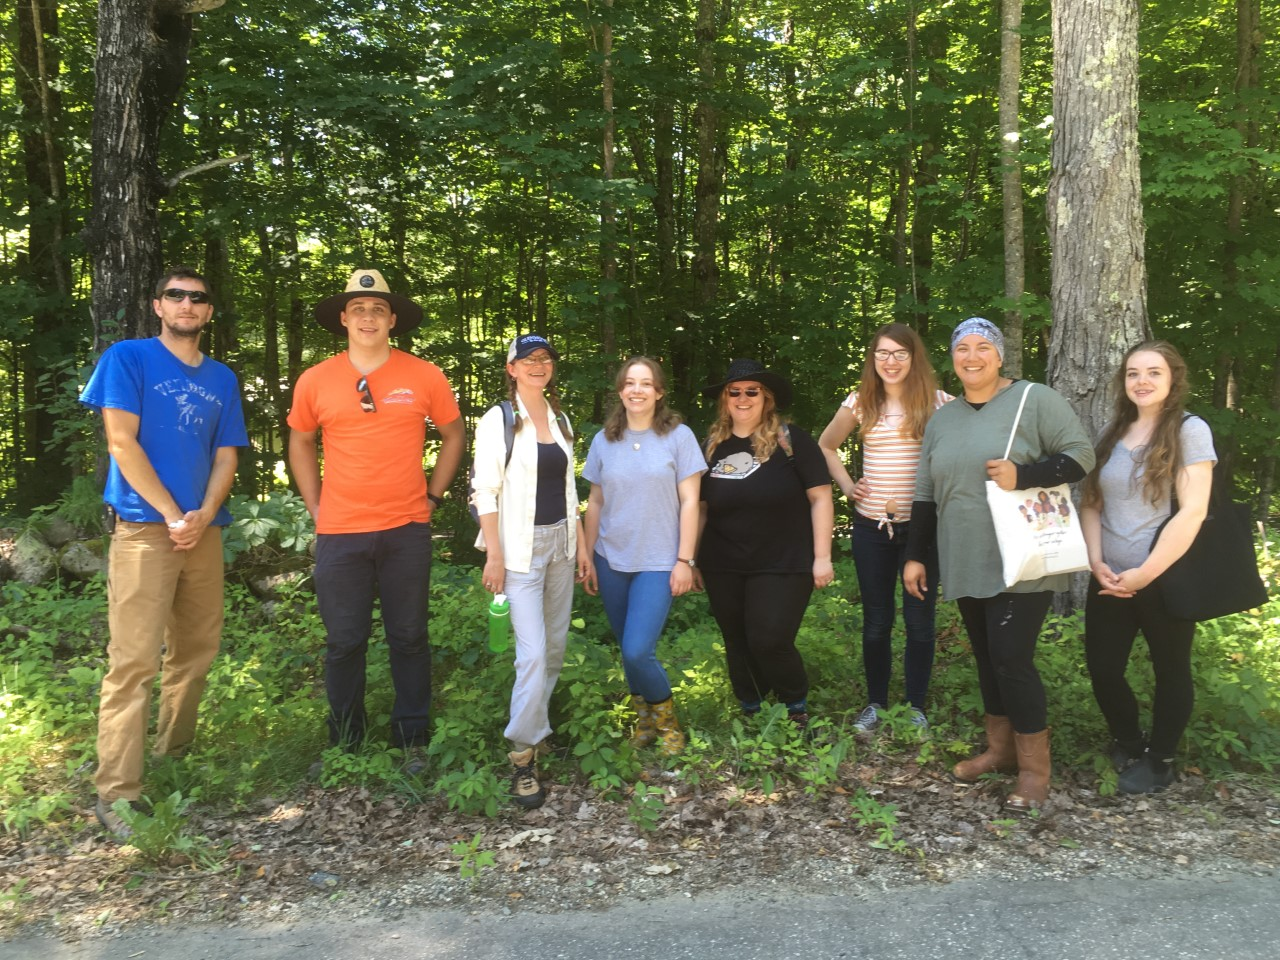 Natural History of Vermont students helped remove Japanese knotweed from the Big Rock Nature Preserve in Lyme, New Hampshire as part of a service learning project.